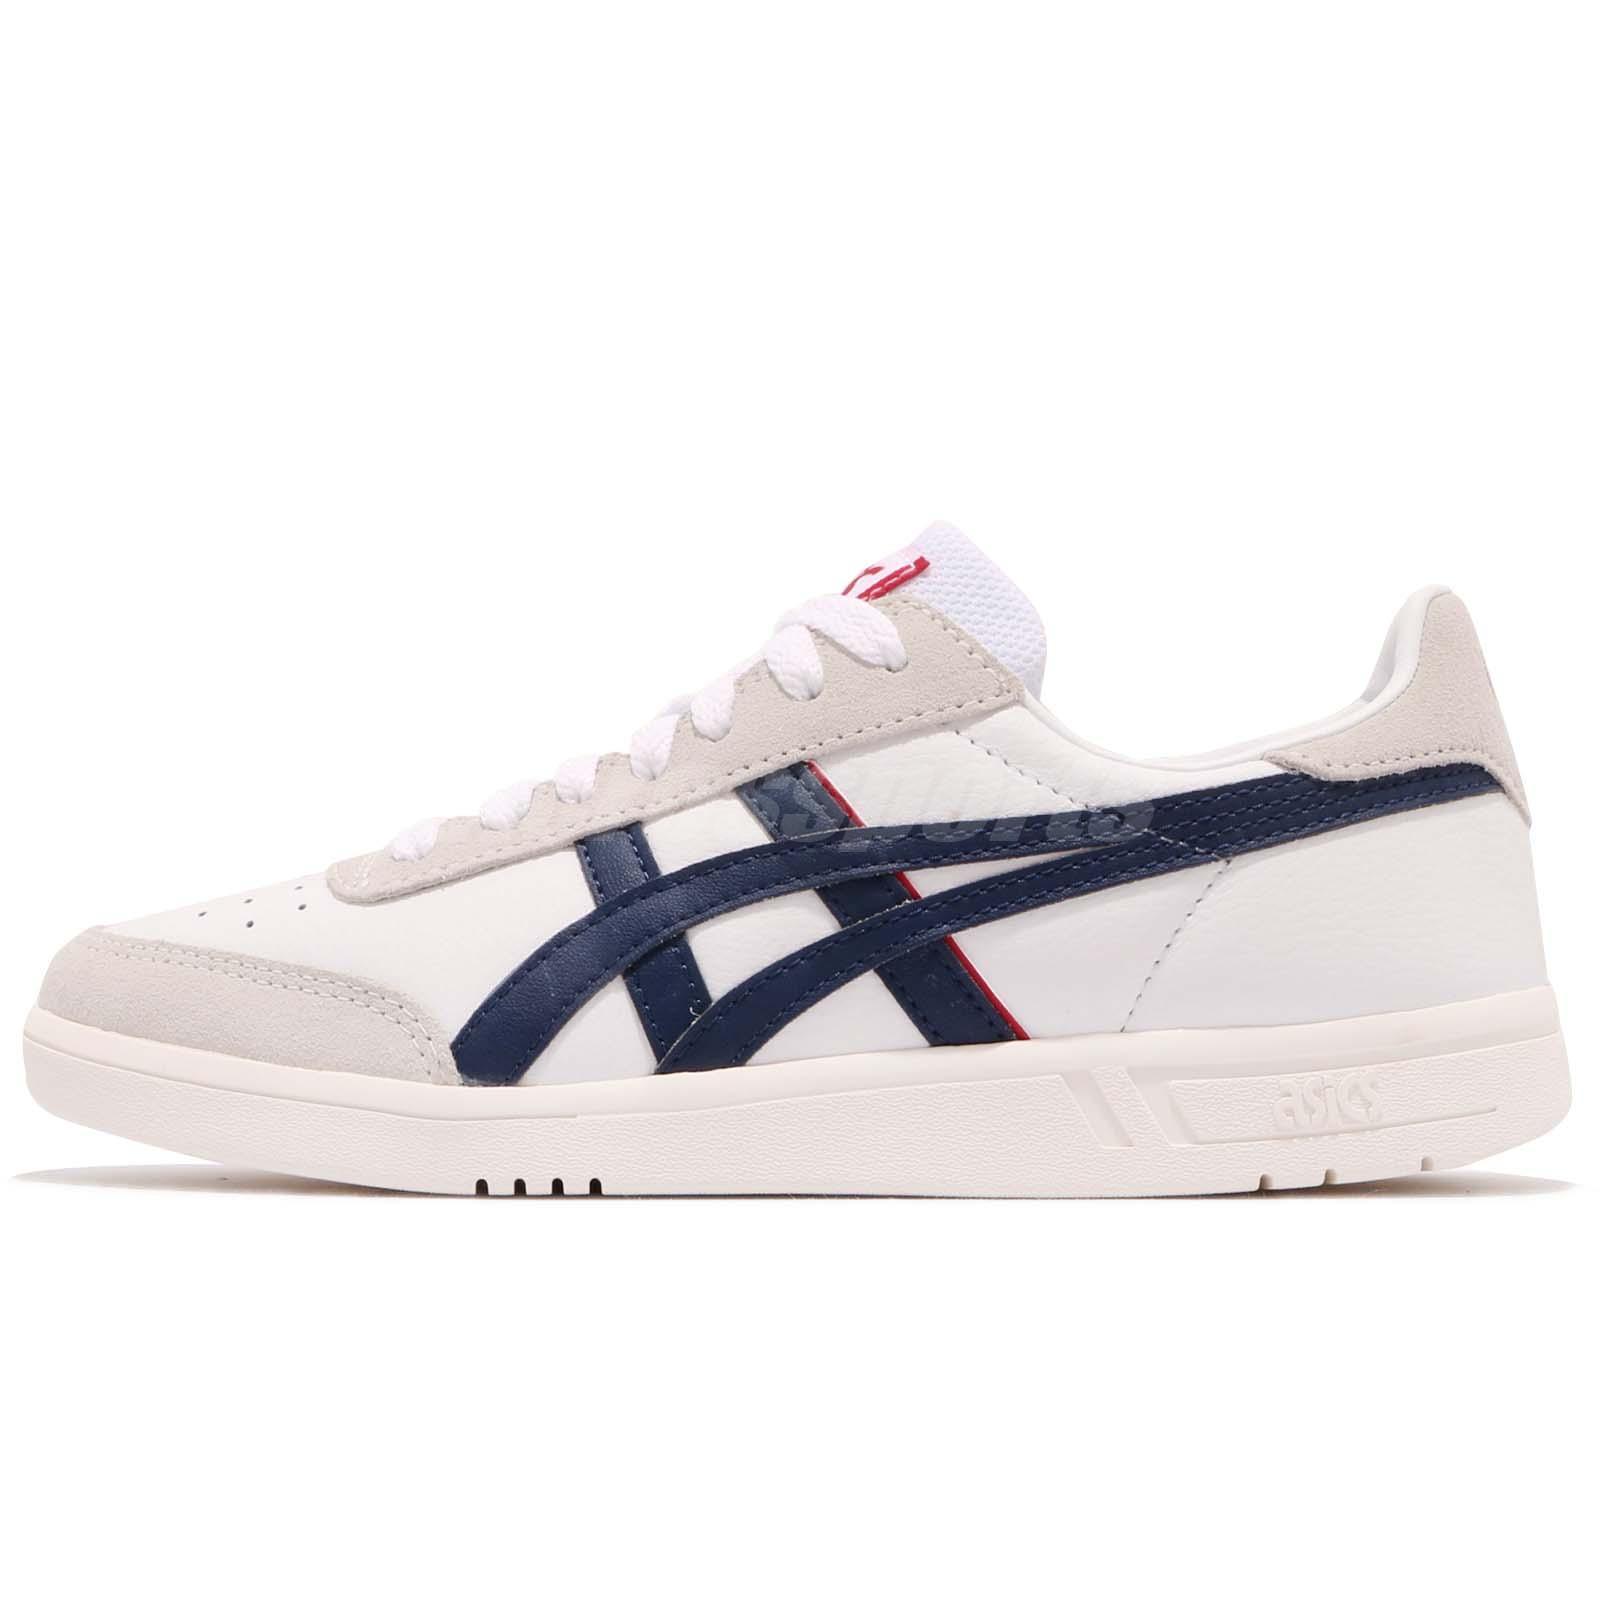 Casual Sneakers Asics Gel Vickka Trs Shoes Peacoat White Men Tiger P06wFPqB